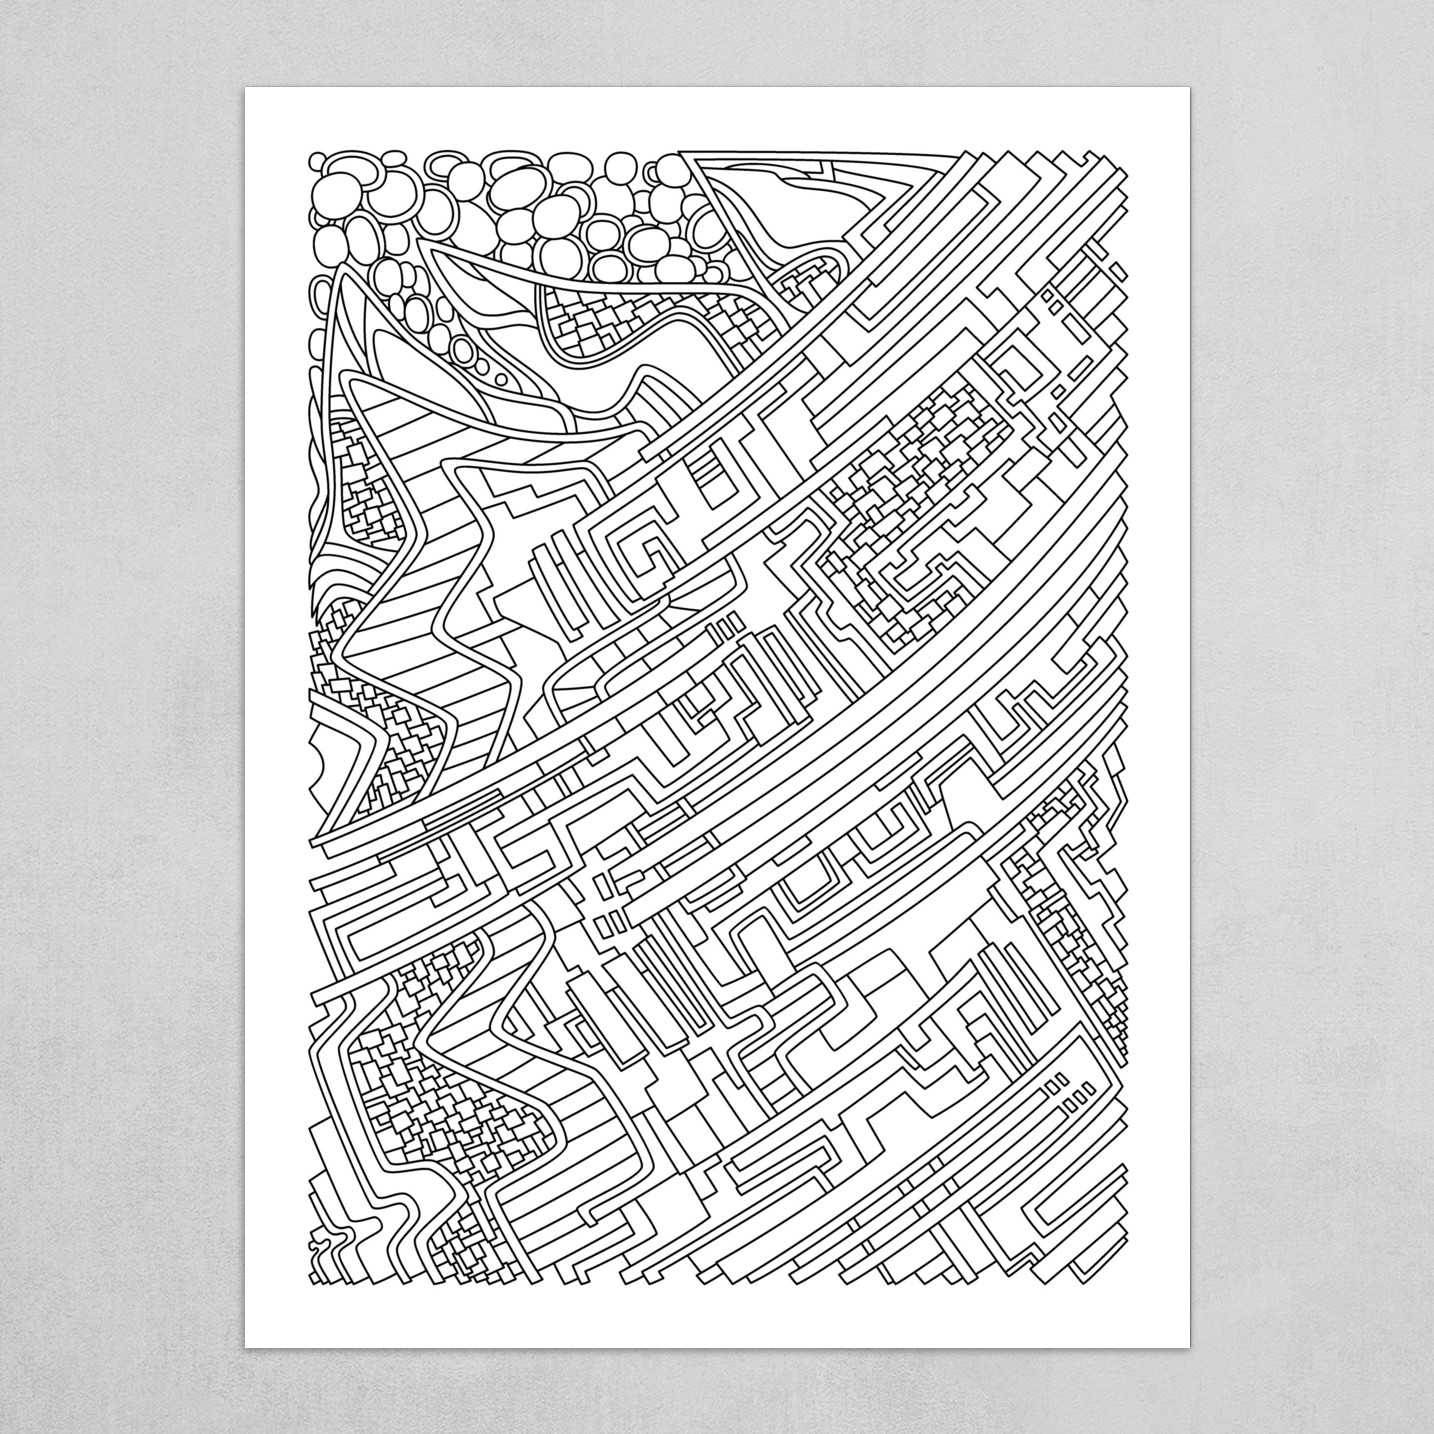 Wandering Abstract Line Art 28: Black & White